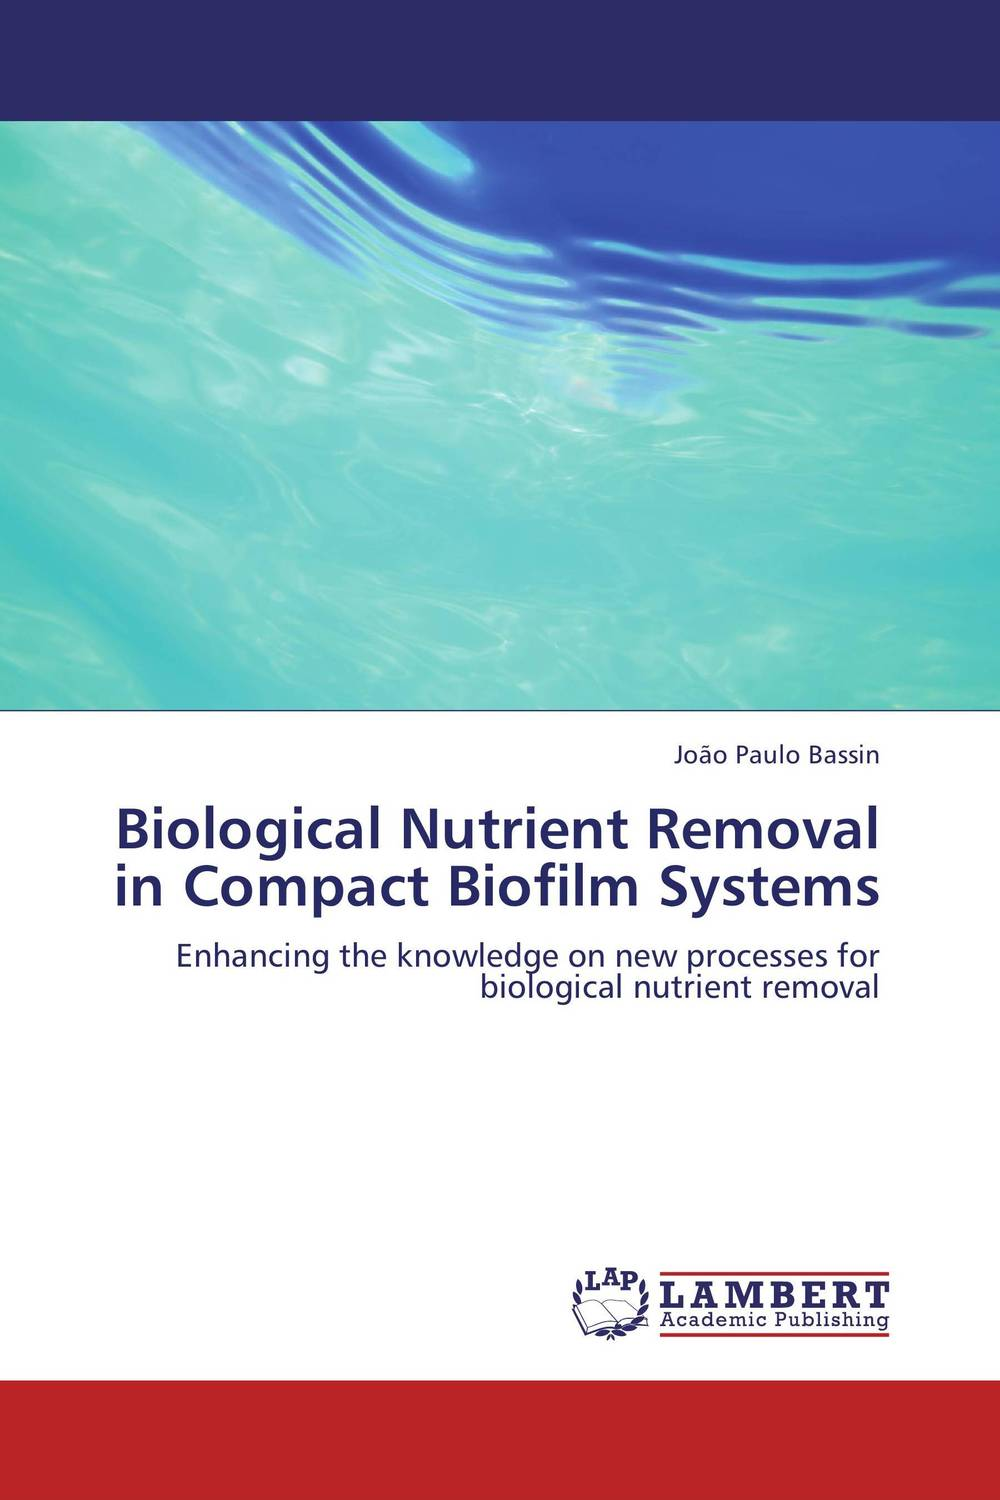 Biological Nutrient Removal in Compact Biofilm Systems purnima sareen sundeep kumar and rakesh singh molecular and pathological characterization of slow rusting in wheat